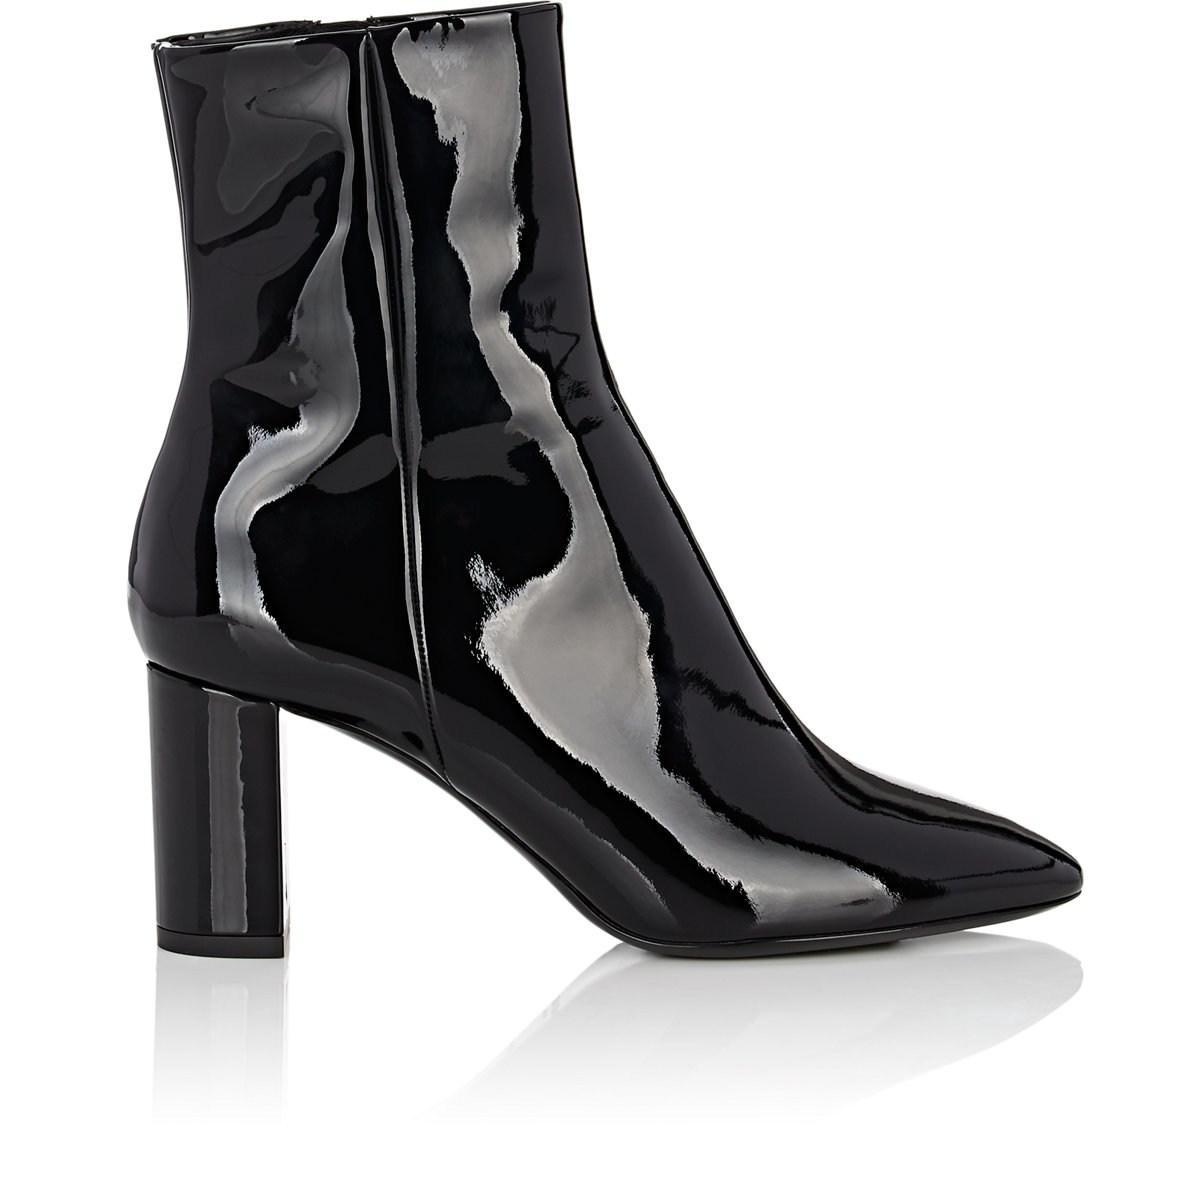 6bcb732e976 Lyst - Saint Laurent Loulou Patent Leather Ankle Boots in Black